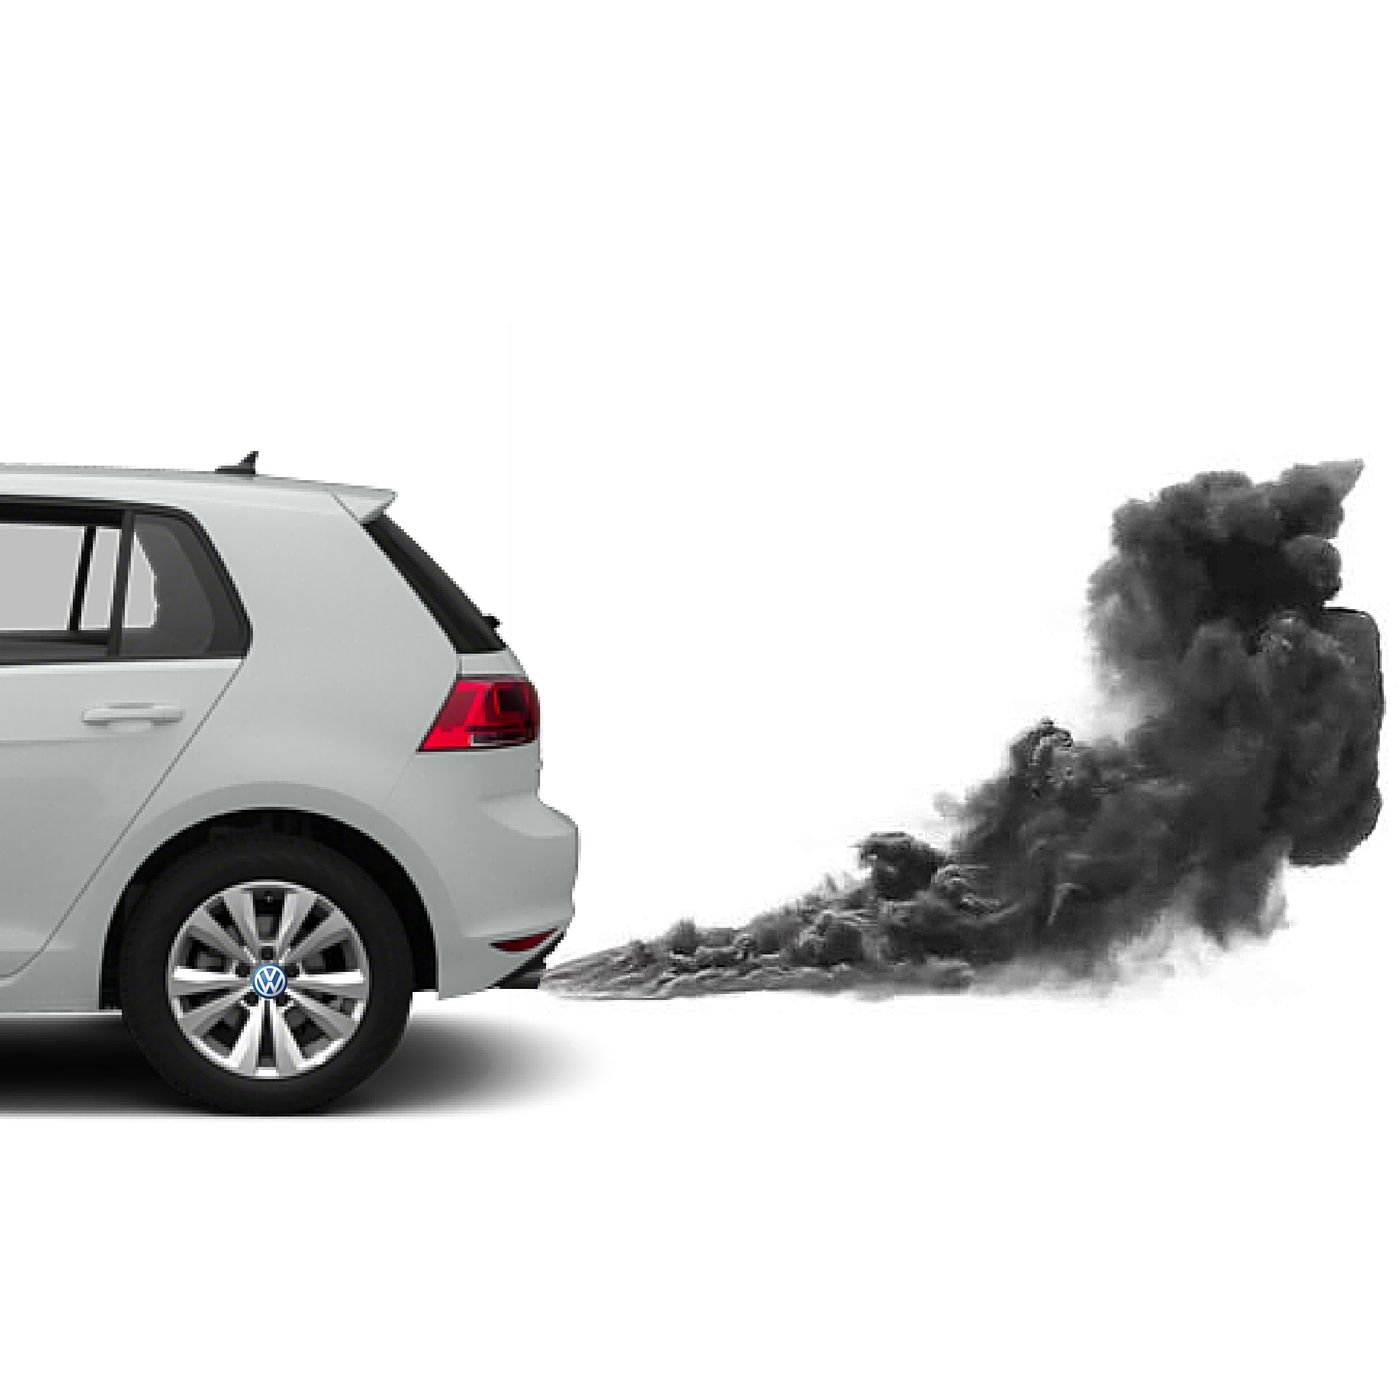 25: Volkswagen Up In Smoke As The South African Government Investigates